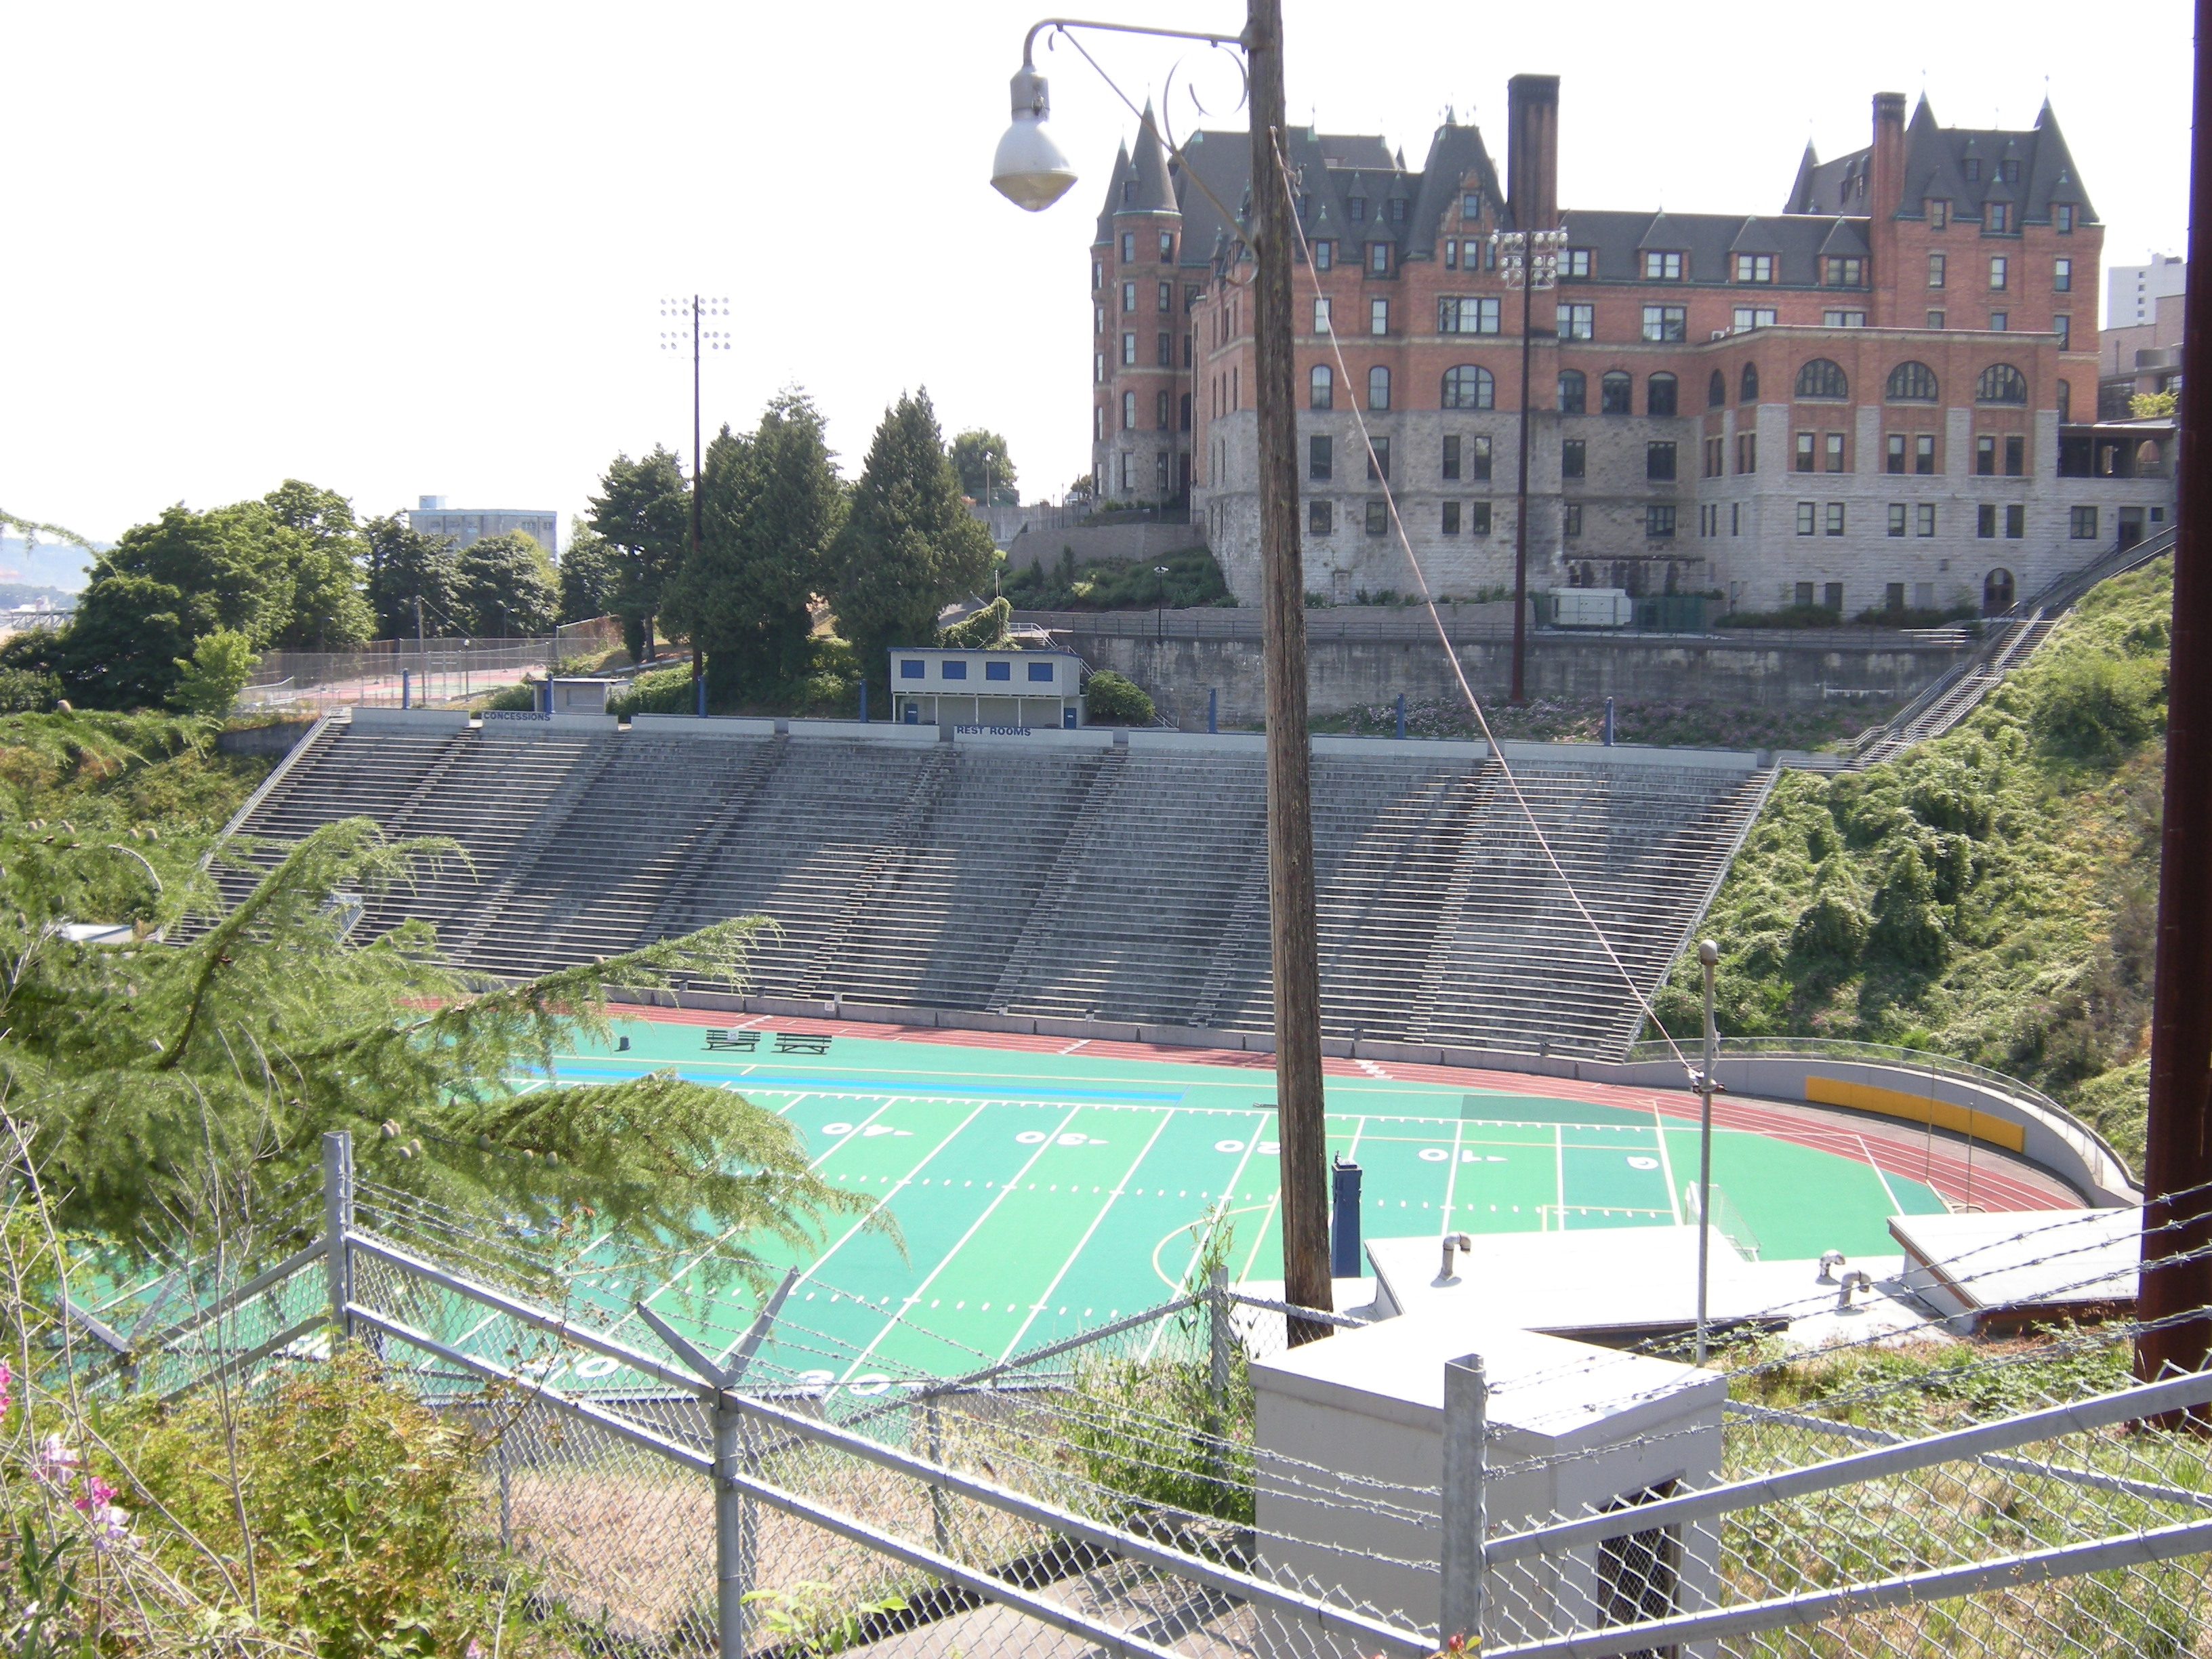 File:Tacoma - Stadium High School 01.jpg